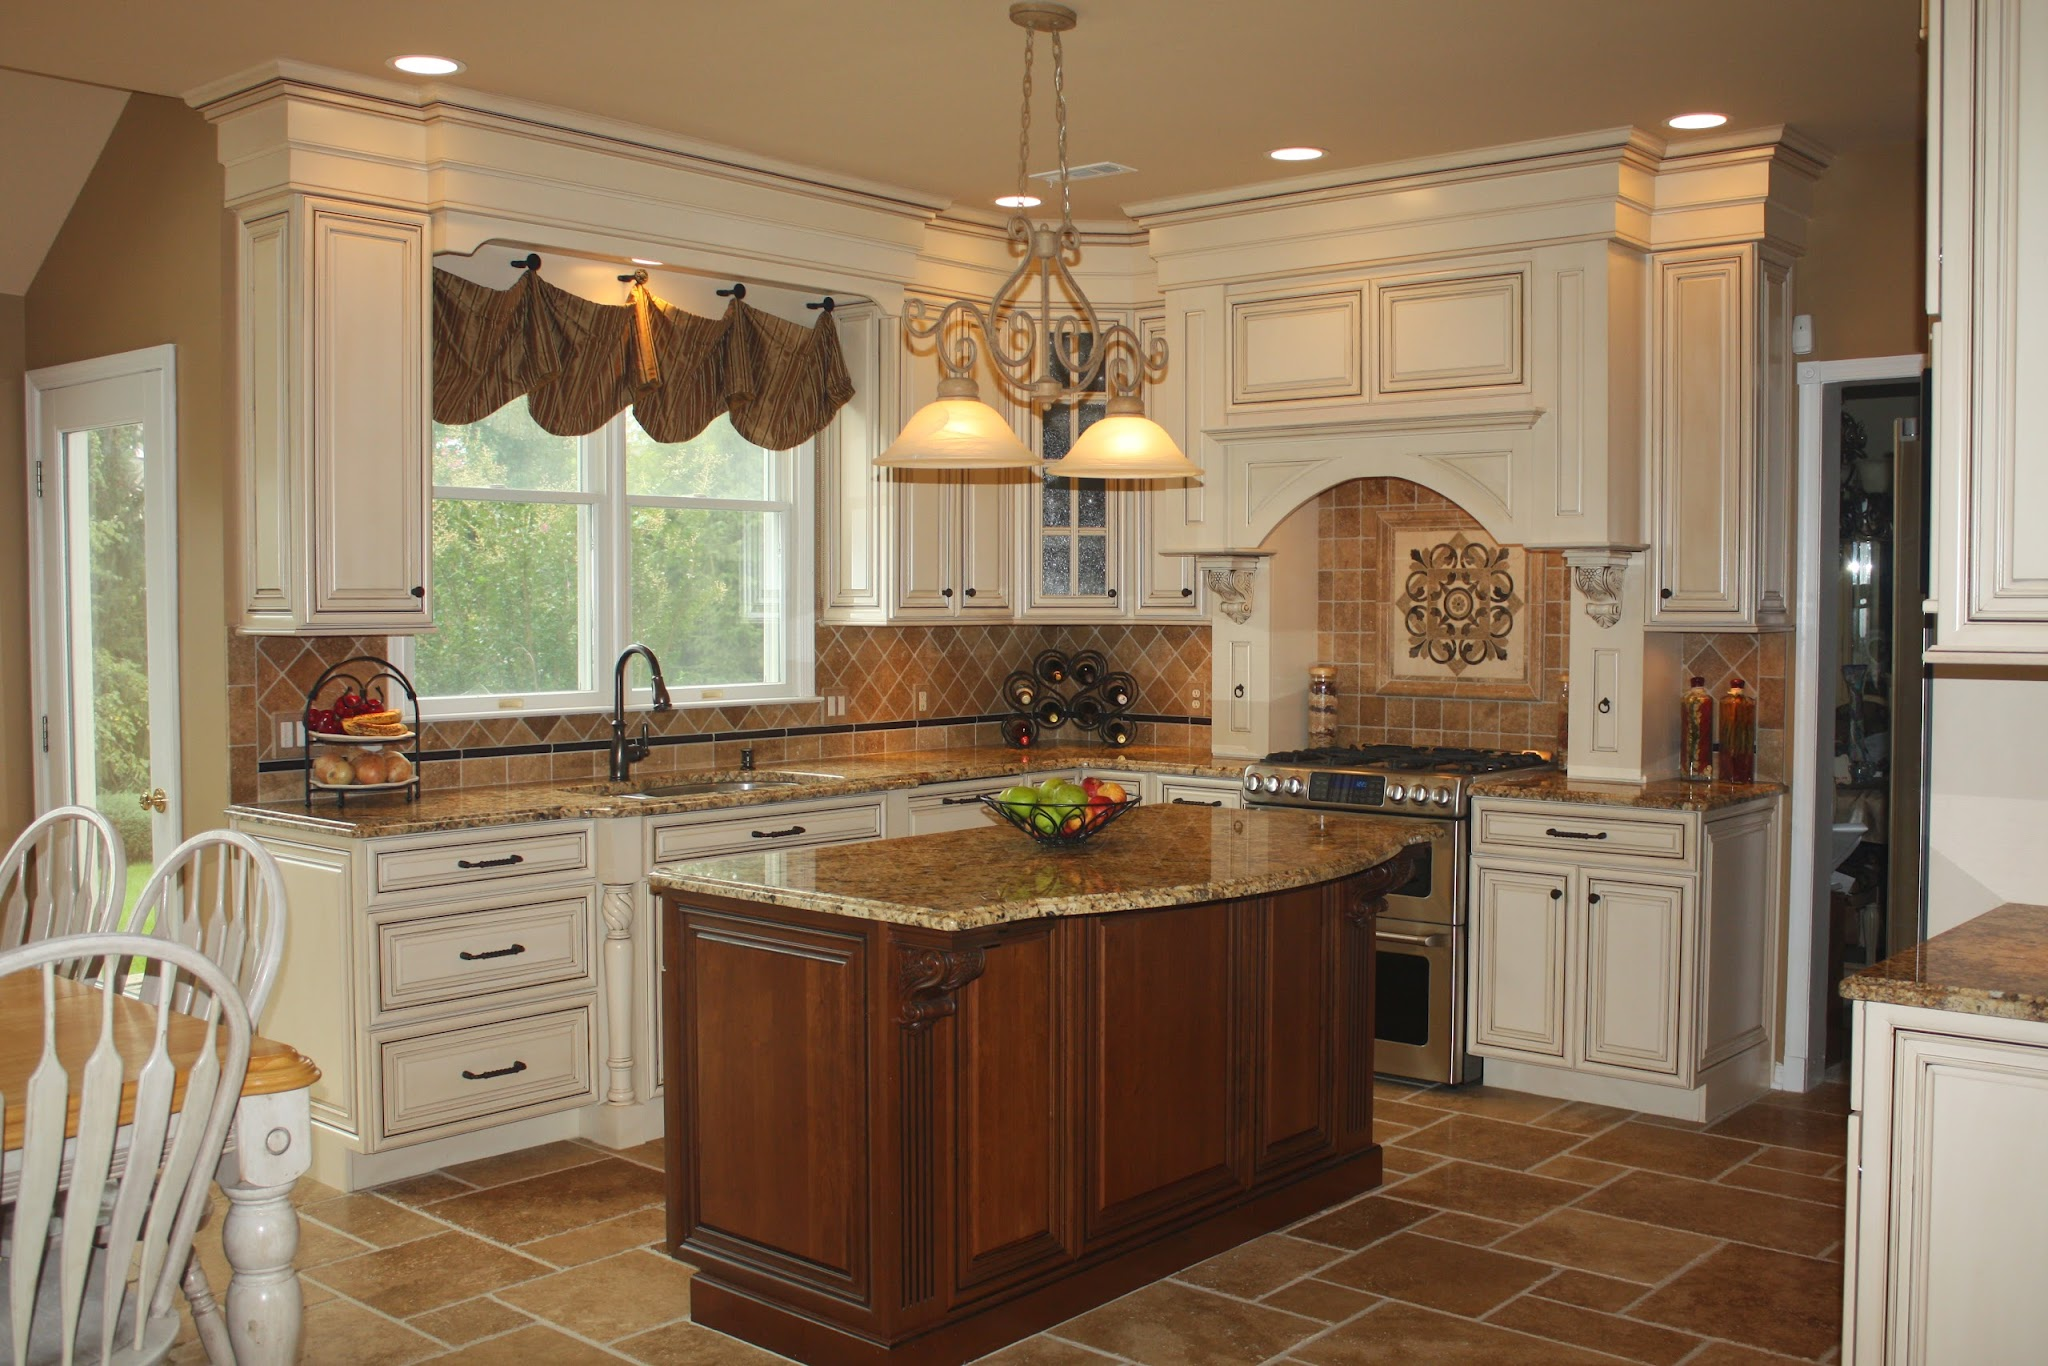 Houzz kitchen dreams house furniture - Kitchen remodel designs ...